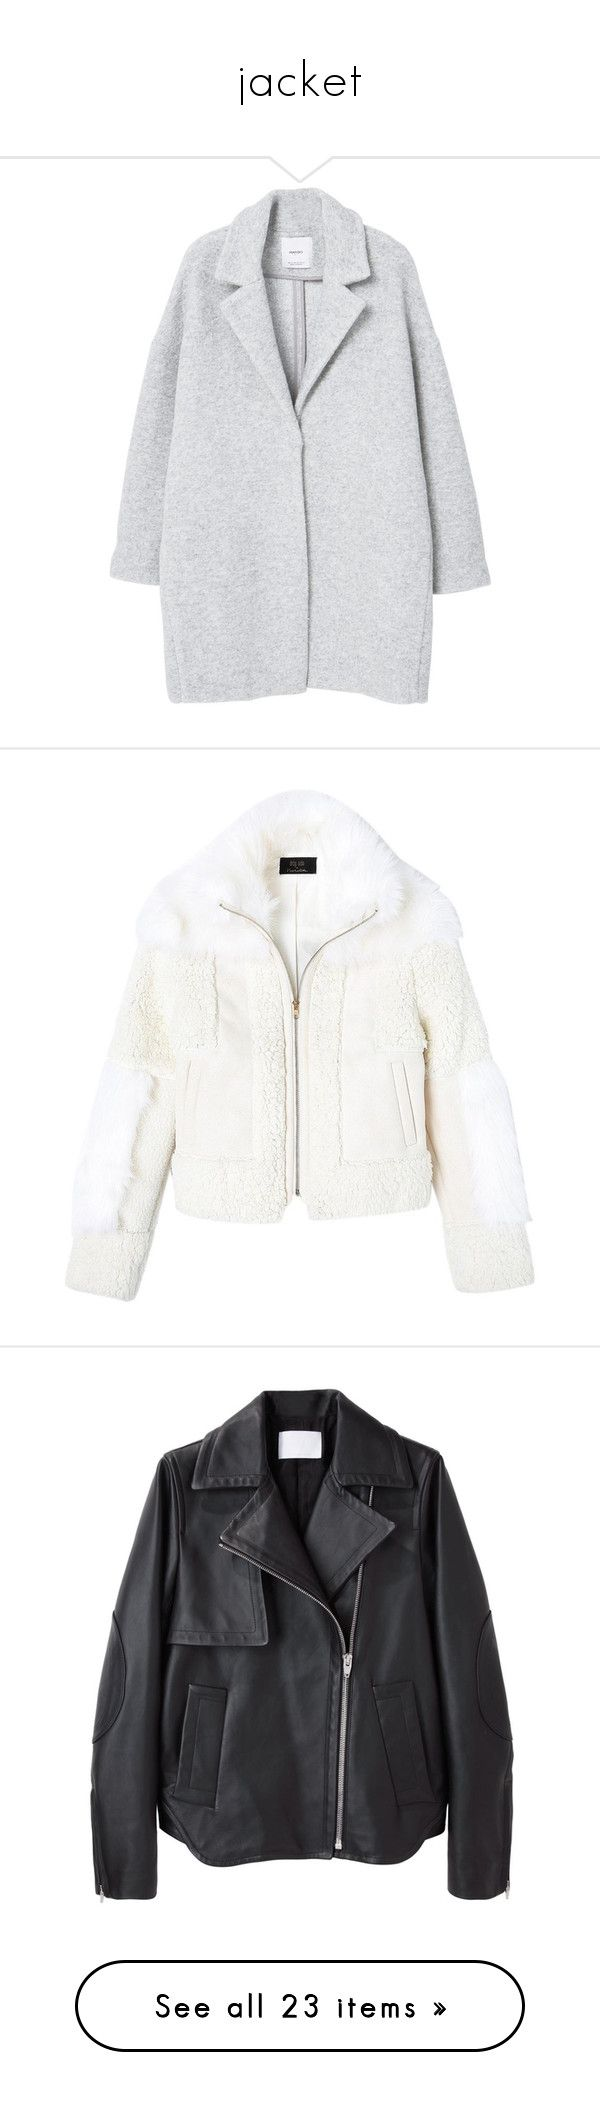 """jacket"" by andjelb ❤ liked on Polyvore featuring outerwear, coats, jackets, coats & jackets, mango coats, woolen coat, lapel coat, wool coat, long sleeve coat and white coat"